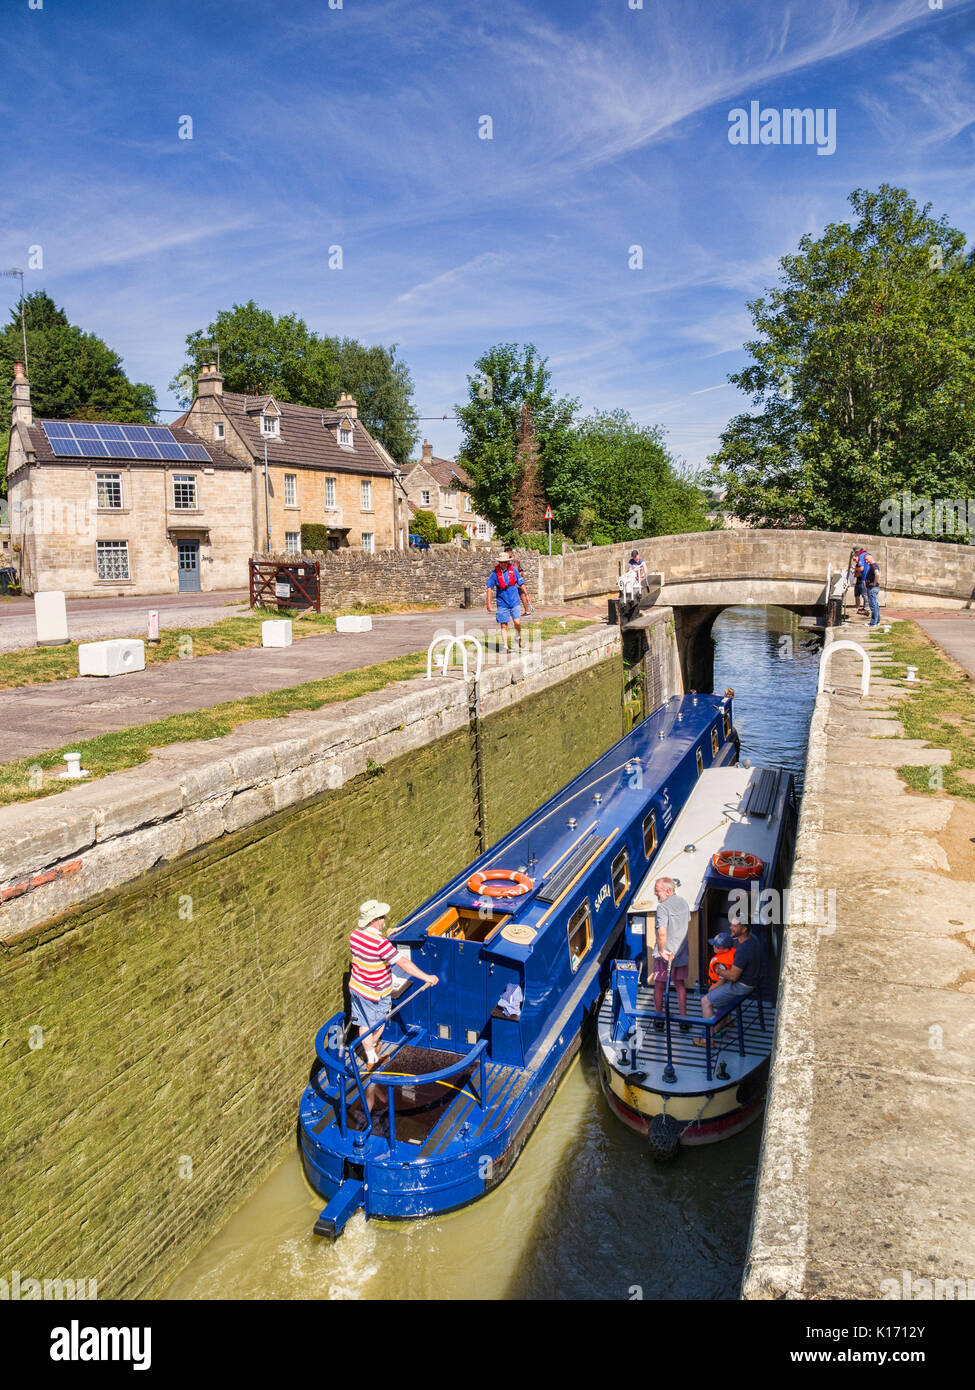 Juillet 2017 7 : Bradford on Avon, Somerset, England, UK - Deux narrowboats passant au travers d'un verrou sur le canal Kennet et Avon. Photo Stock